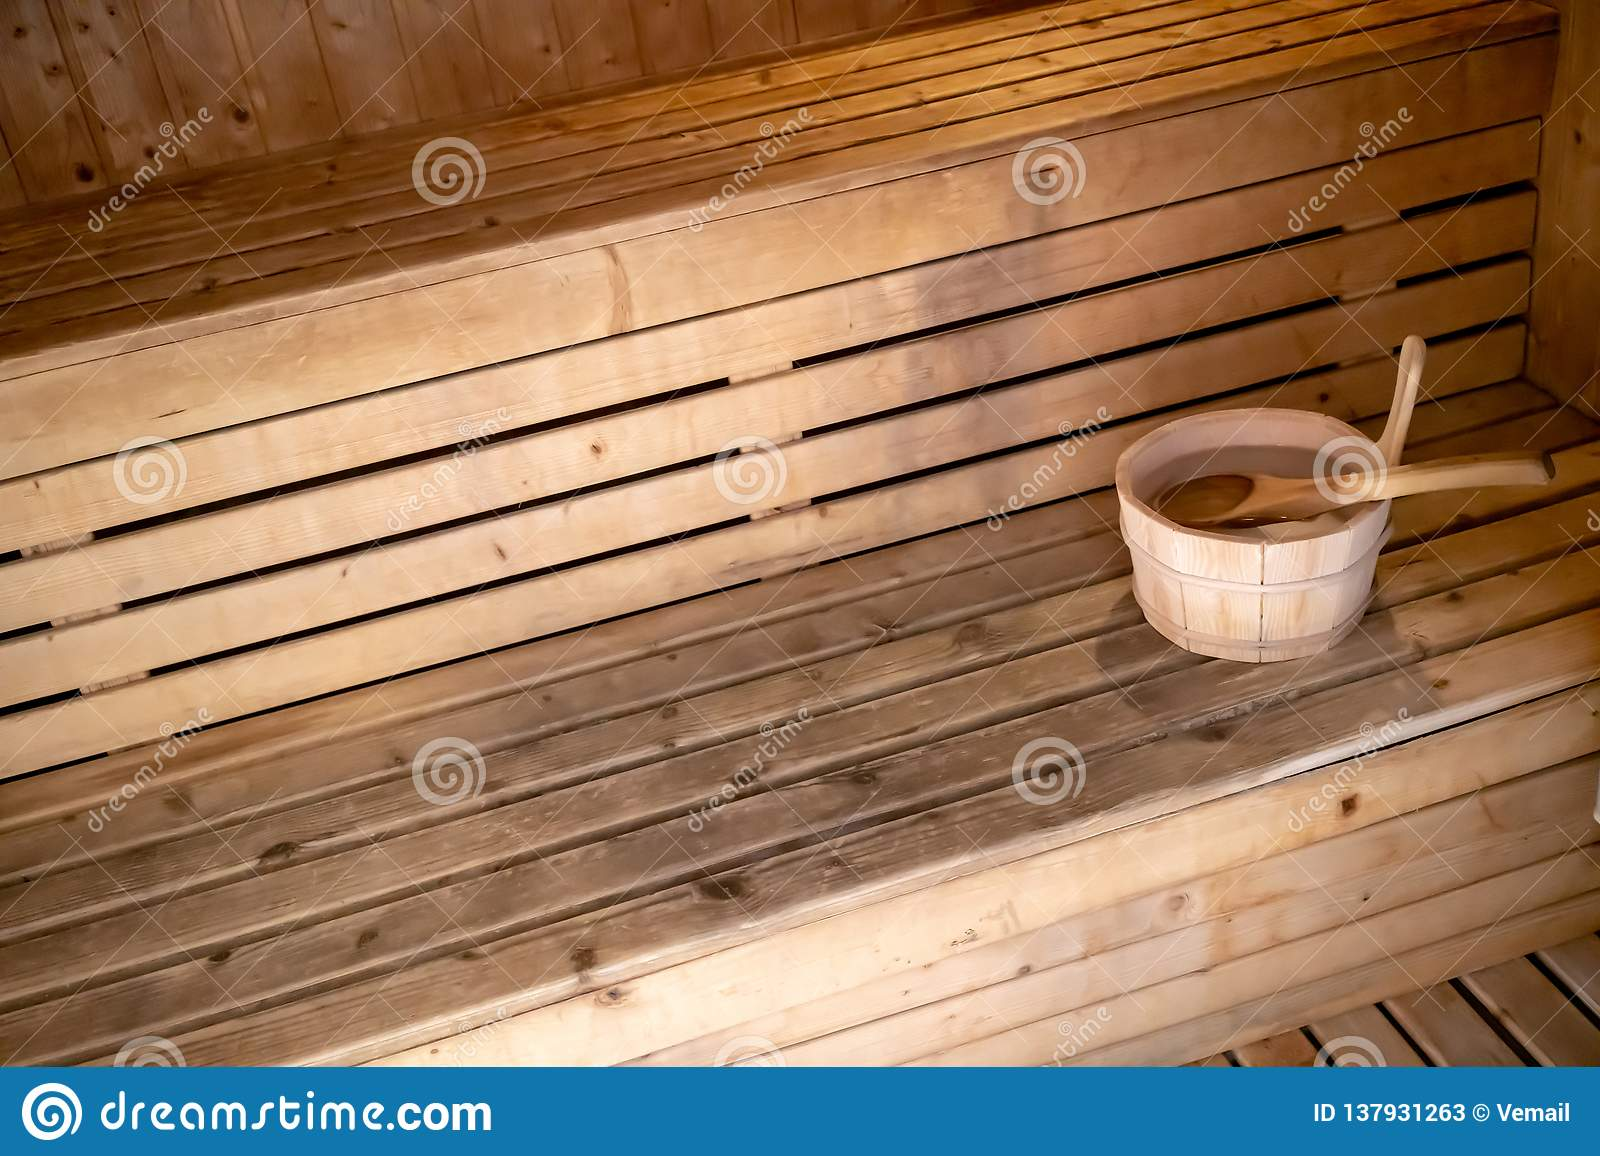 Groovy Detail Of Bucket And Wood Spoon On A Wooden Bench Small Pdpeps Interior Chair Design Pdpepsorg